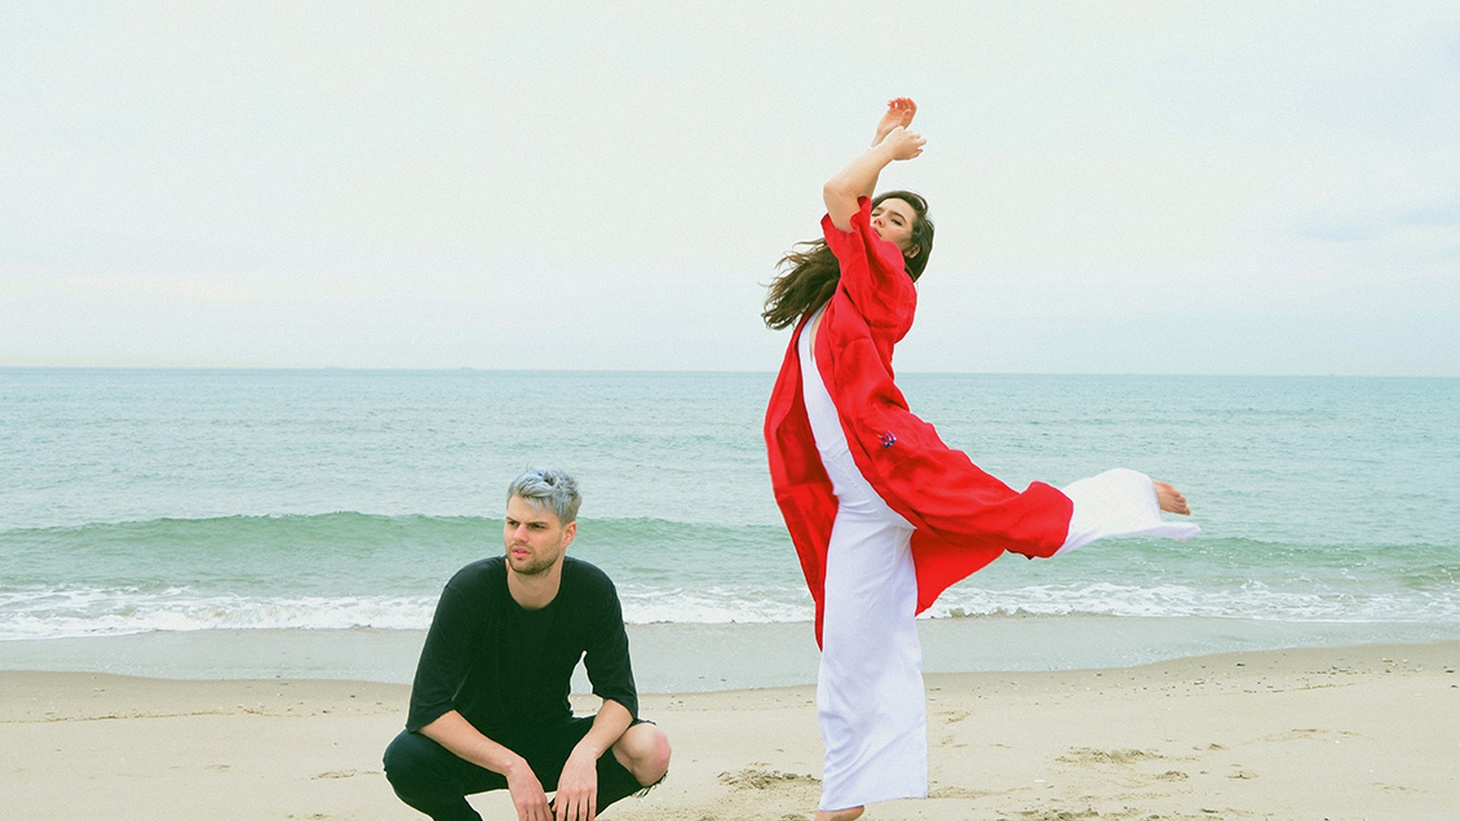 NYC duo Sofi Tukker will duke it out for Best Dance Recording against some heavy competition from Riton,The Chainsmokers, Bob Moses and Flume.